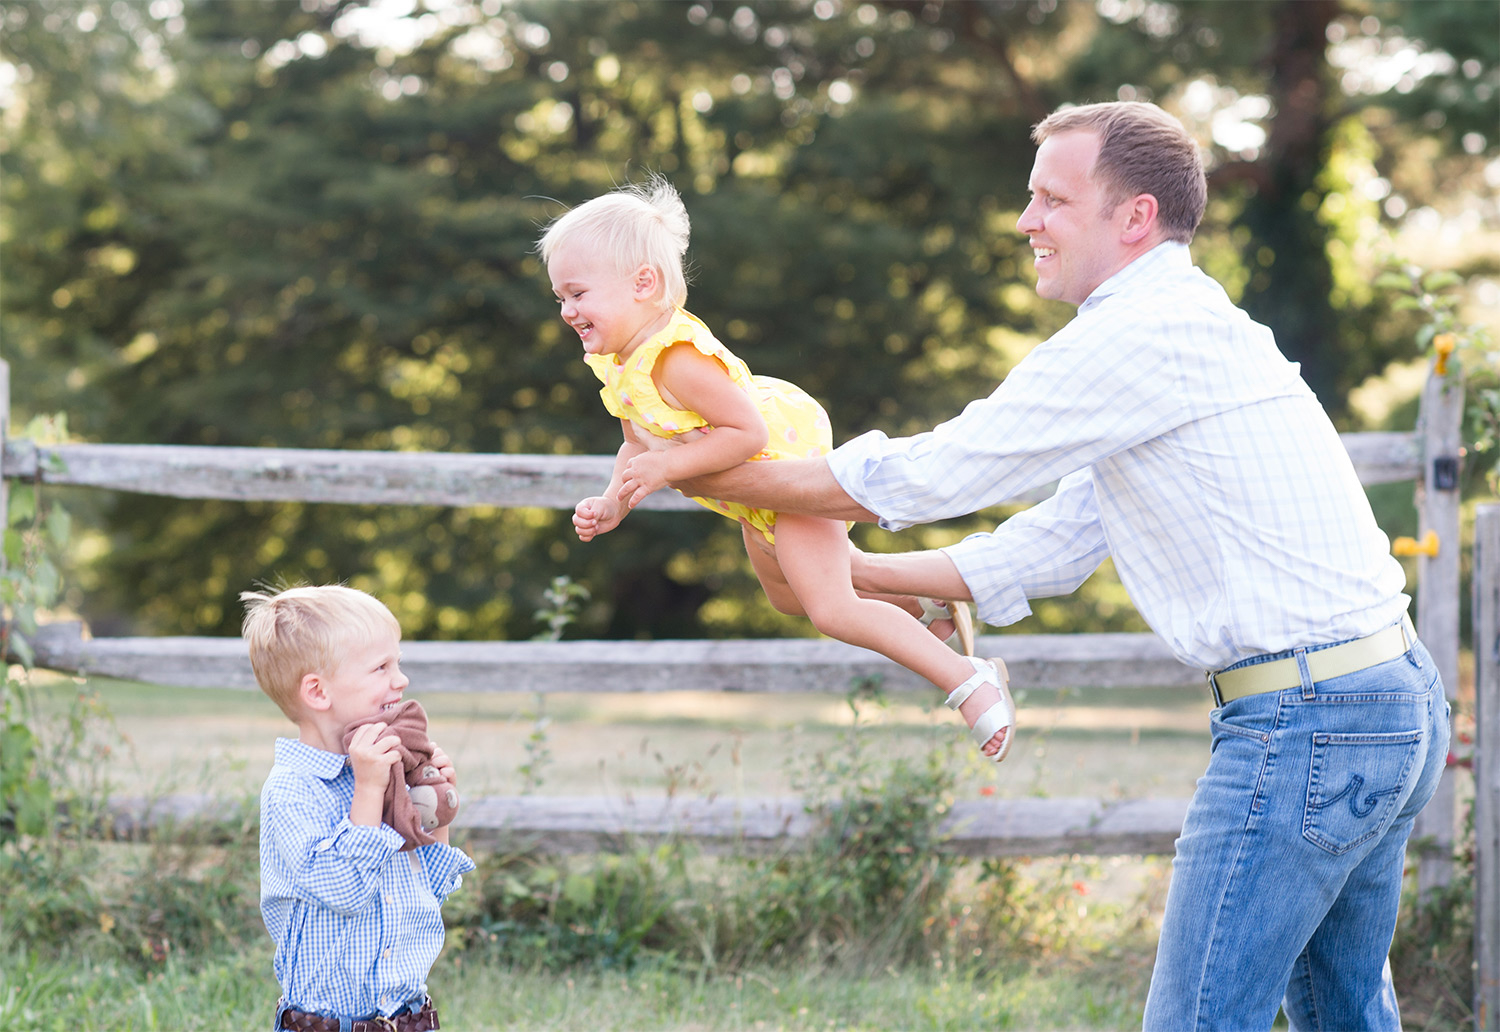 summer-orchard-family-photo-session-boston-2